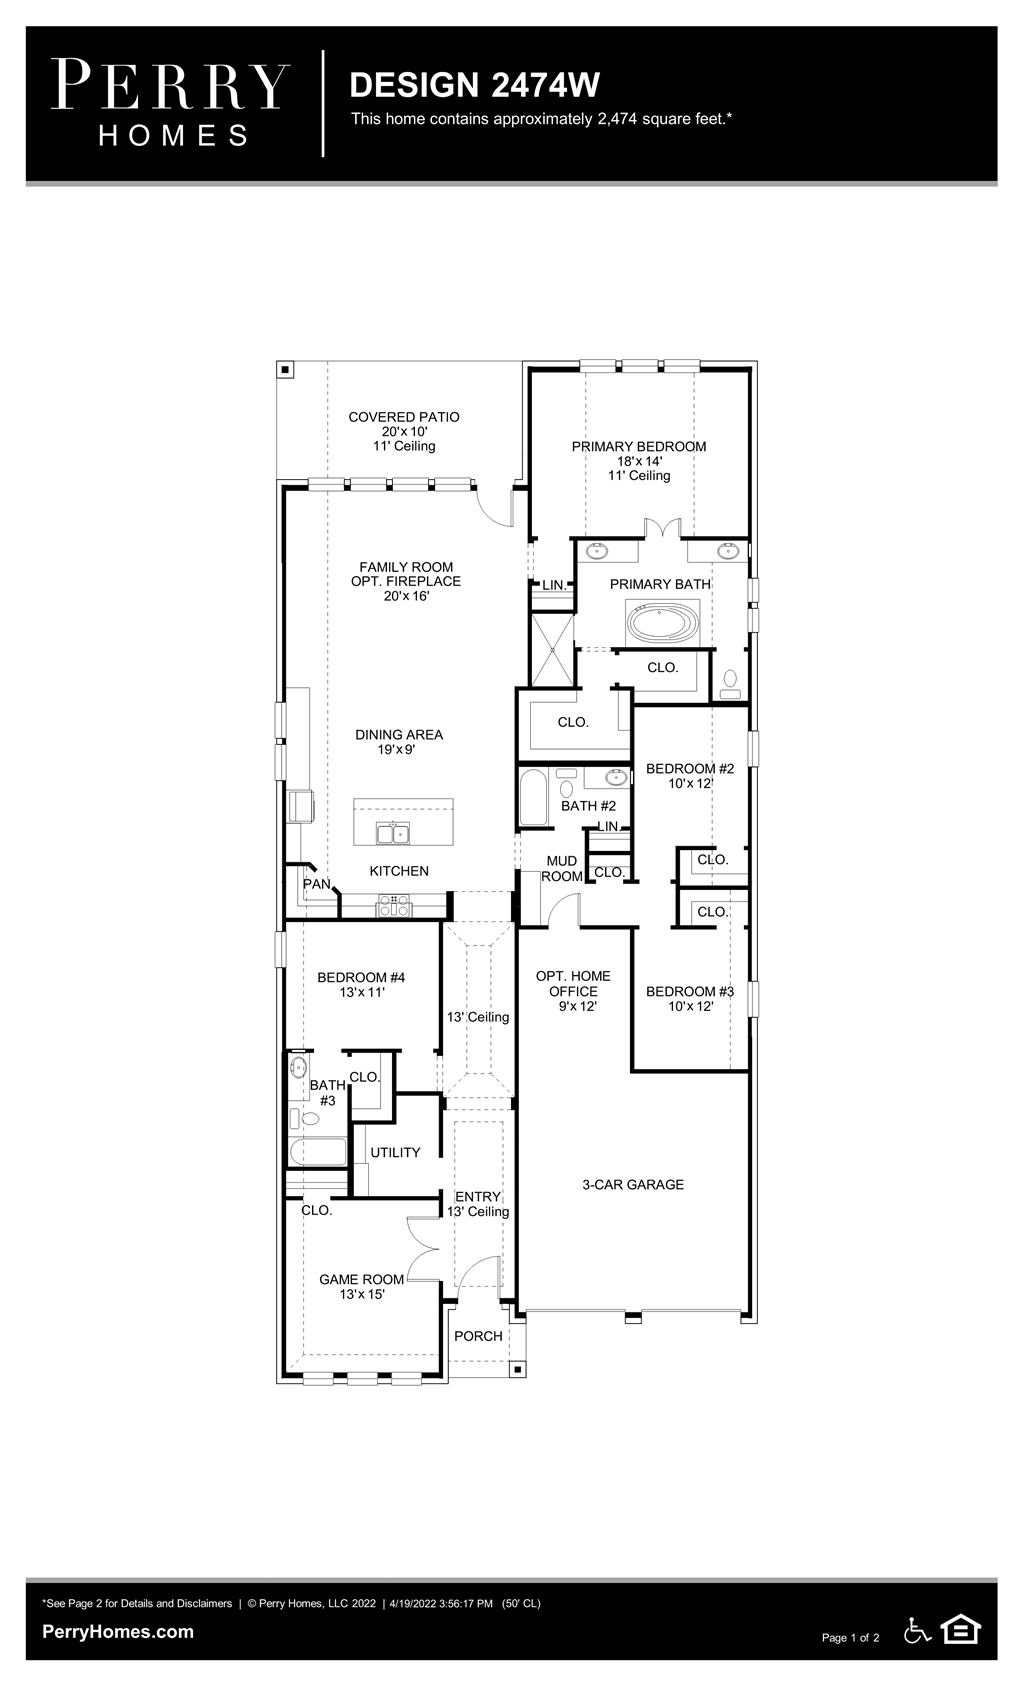 Floor Plan for 2474W